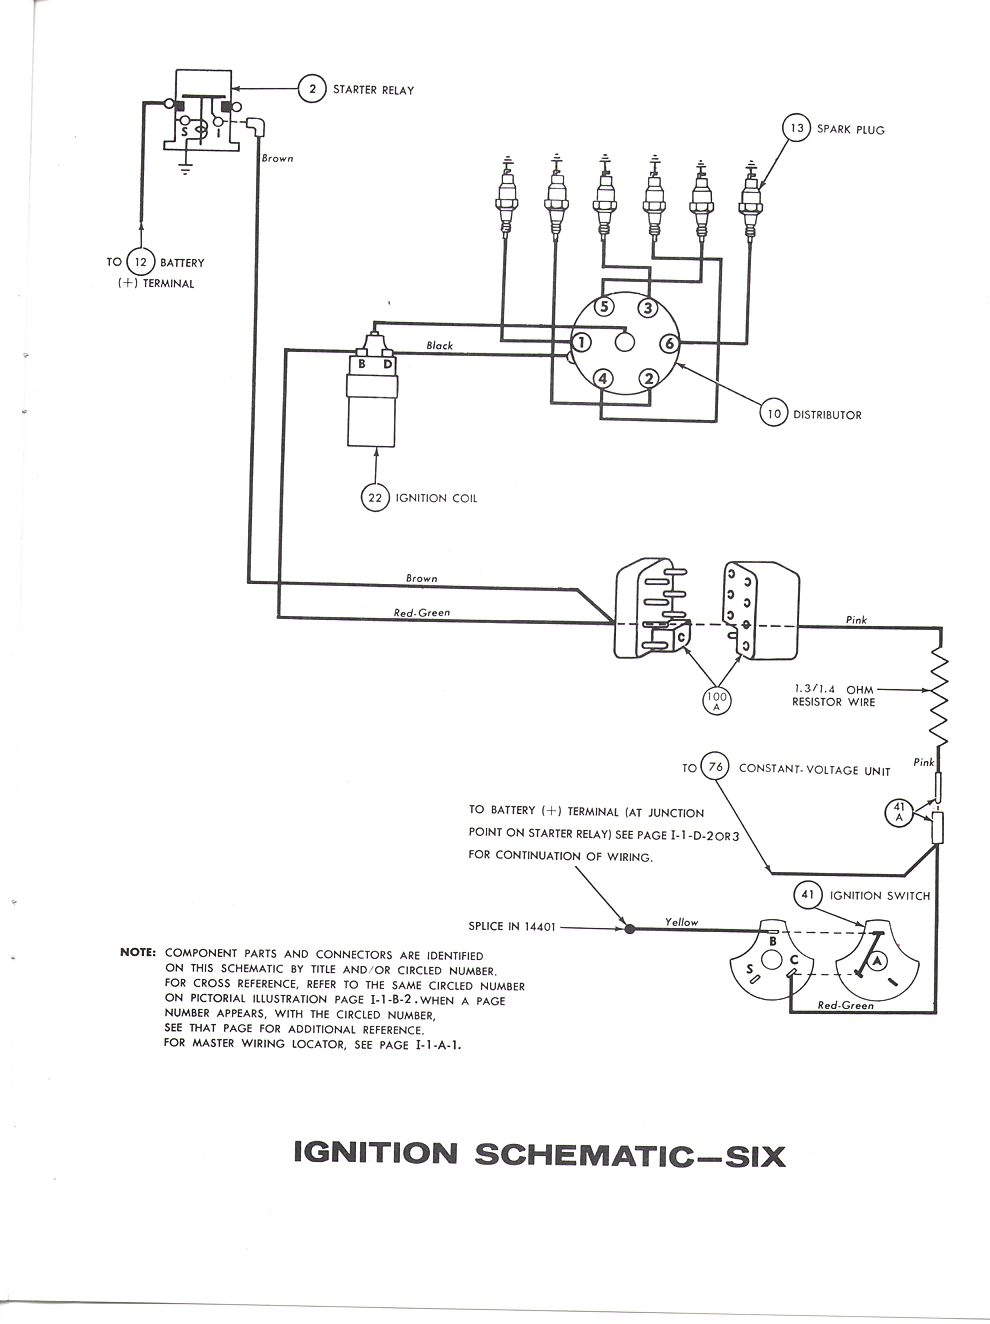 Falcon Diagrams Ford Starter Relay Schematic Here You Will Find Wiring Related To The